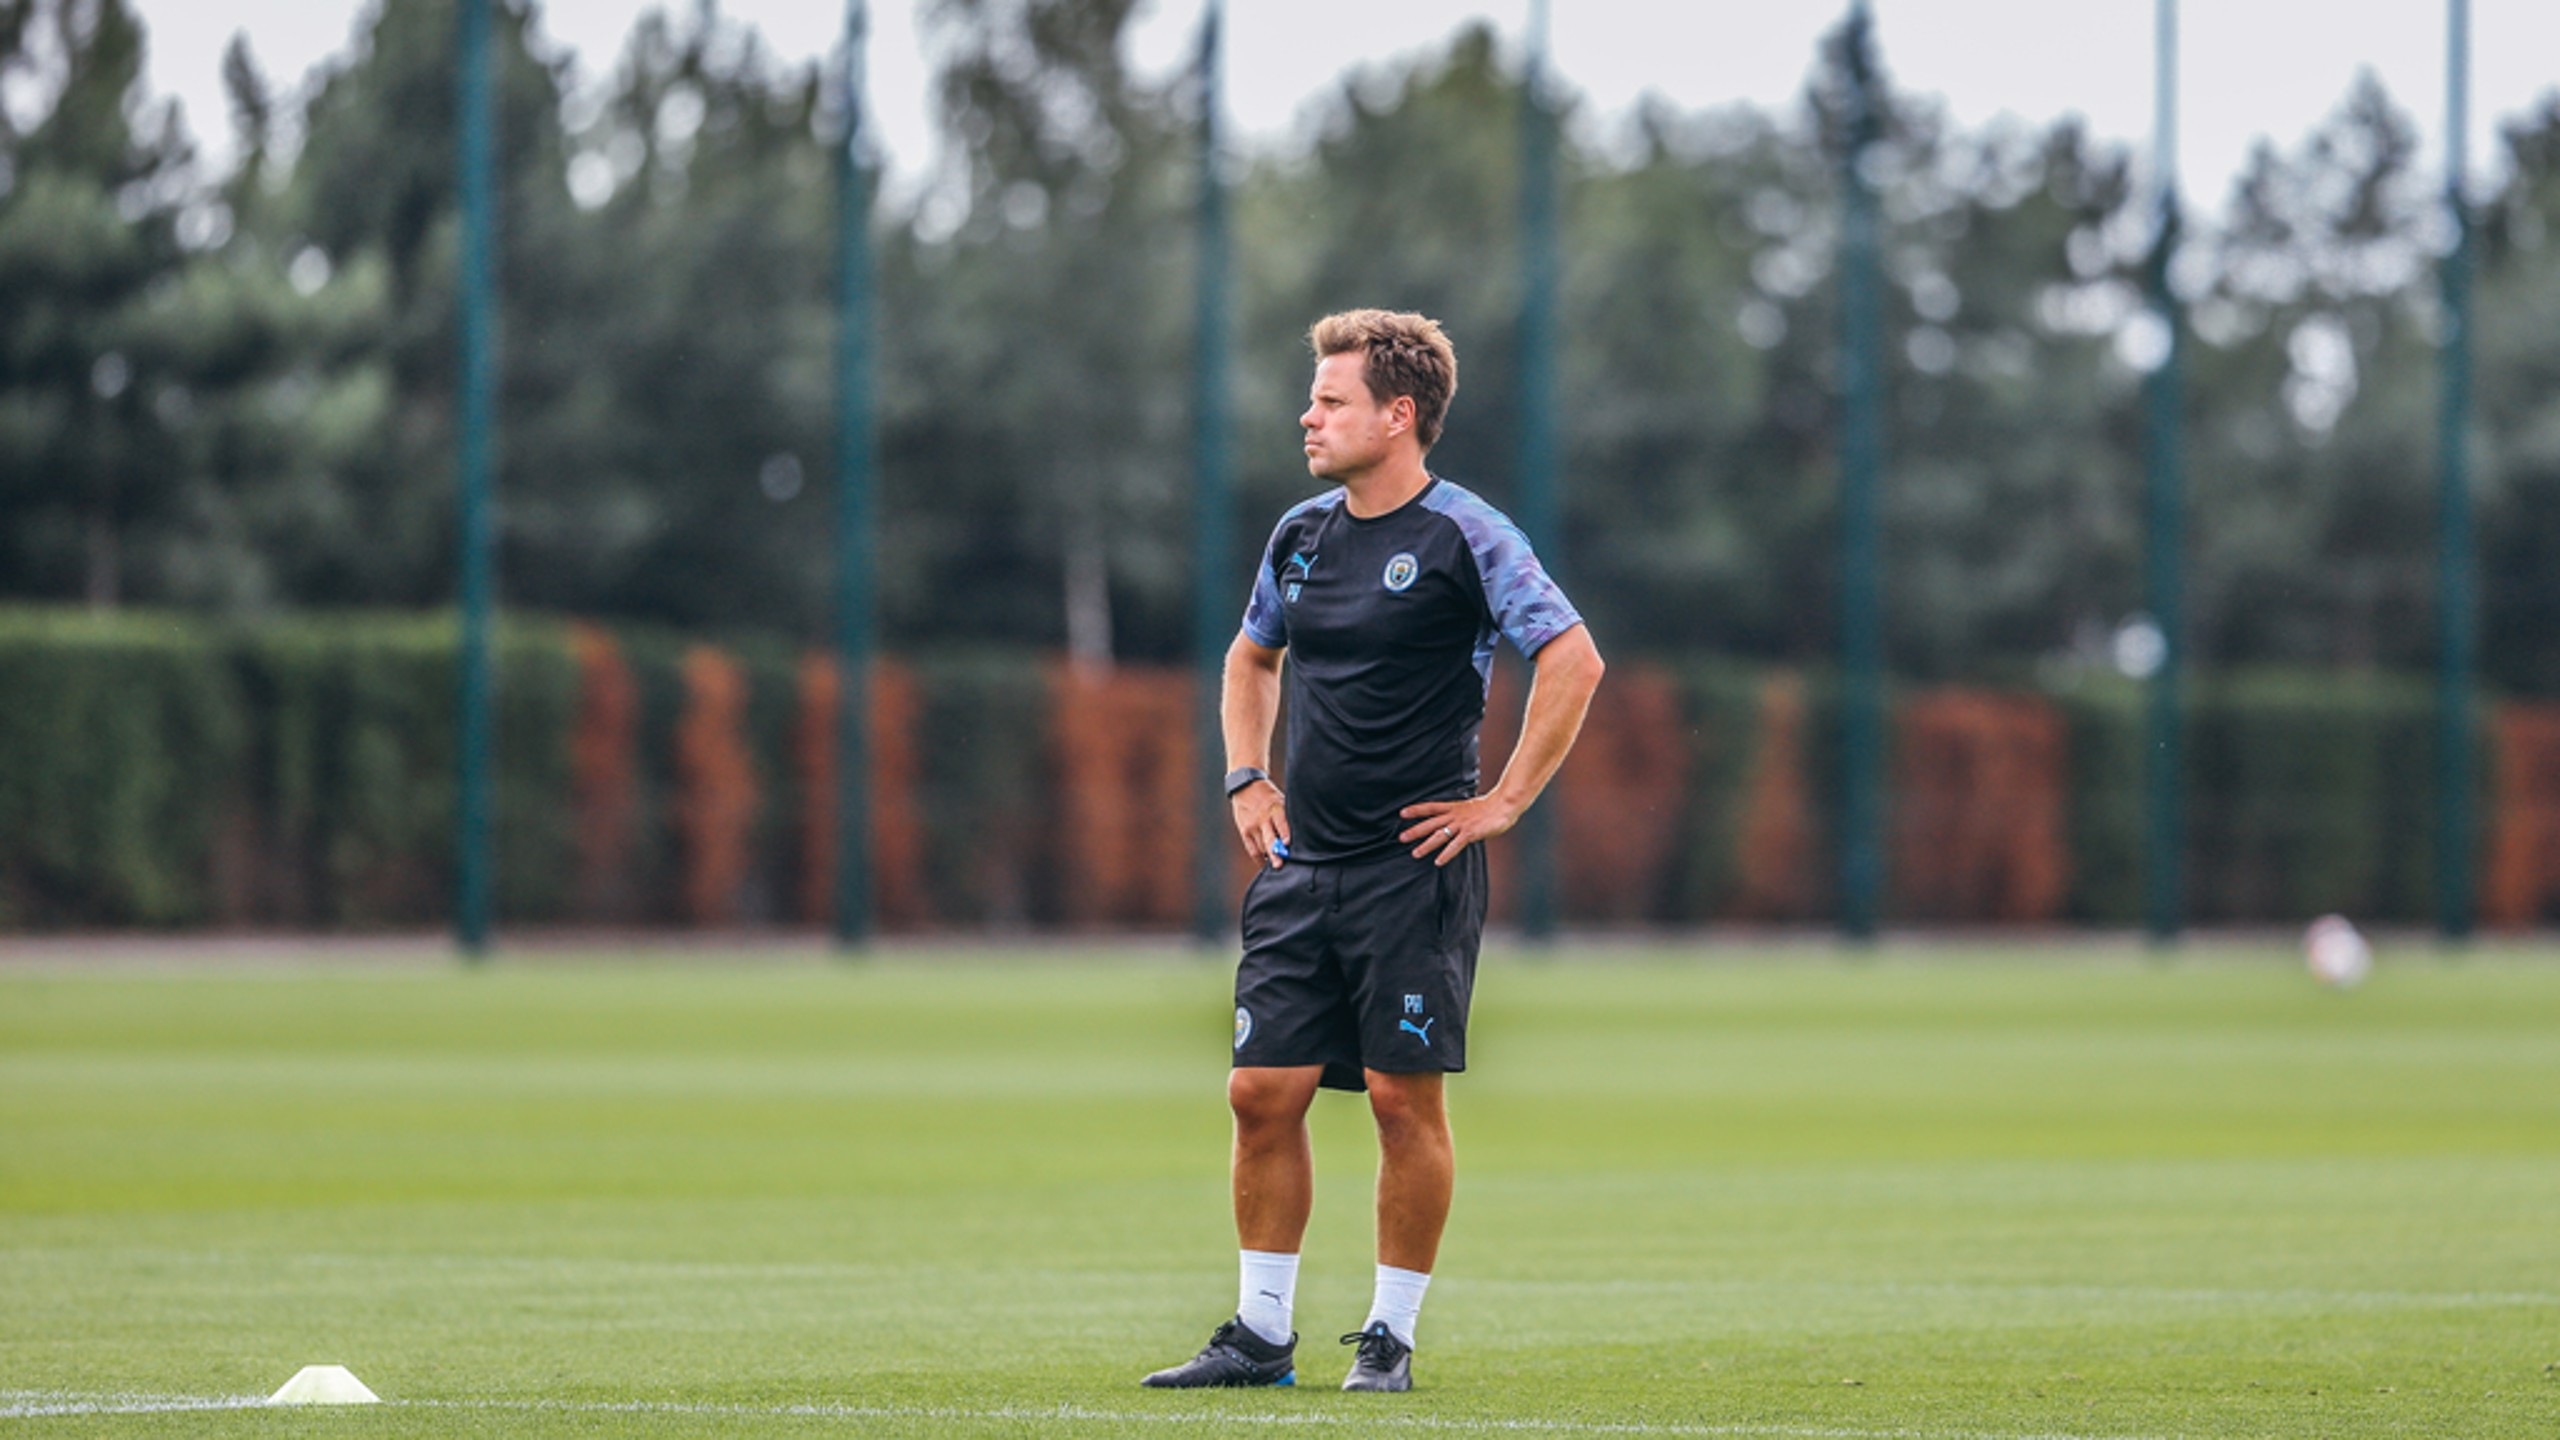 DISAPPOINTMENT: City's PL2 campaign started with defeat at home to Southampton